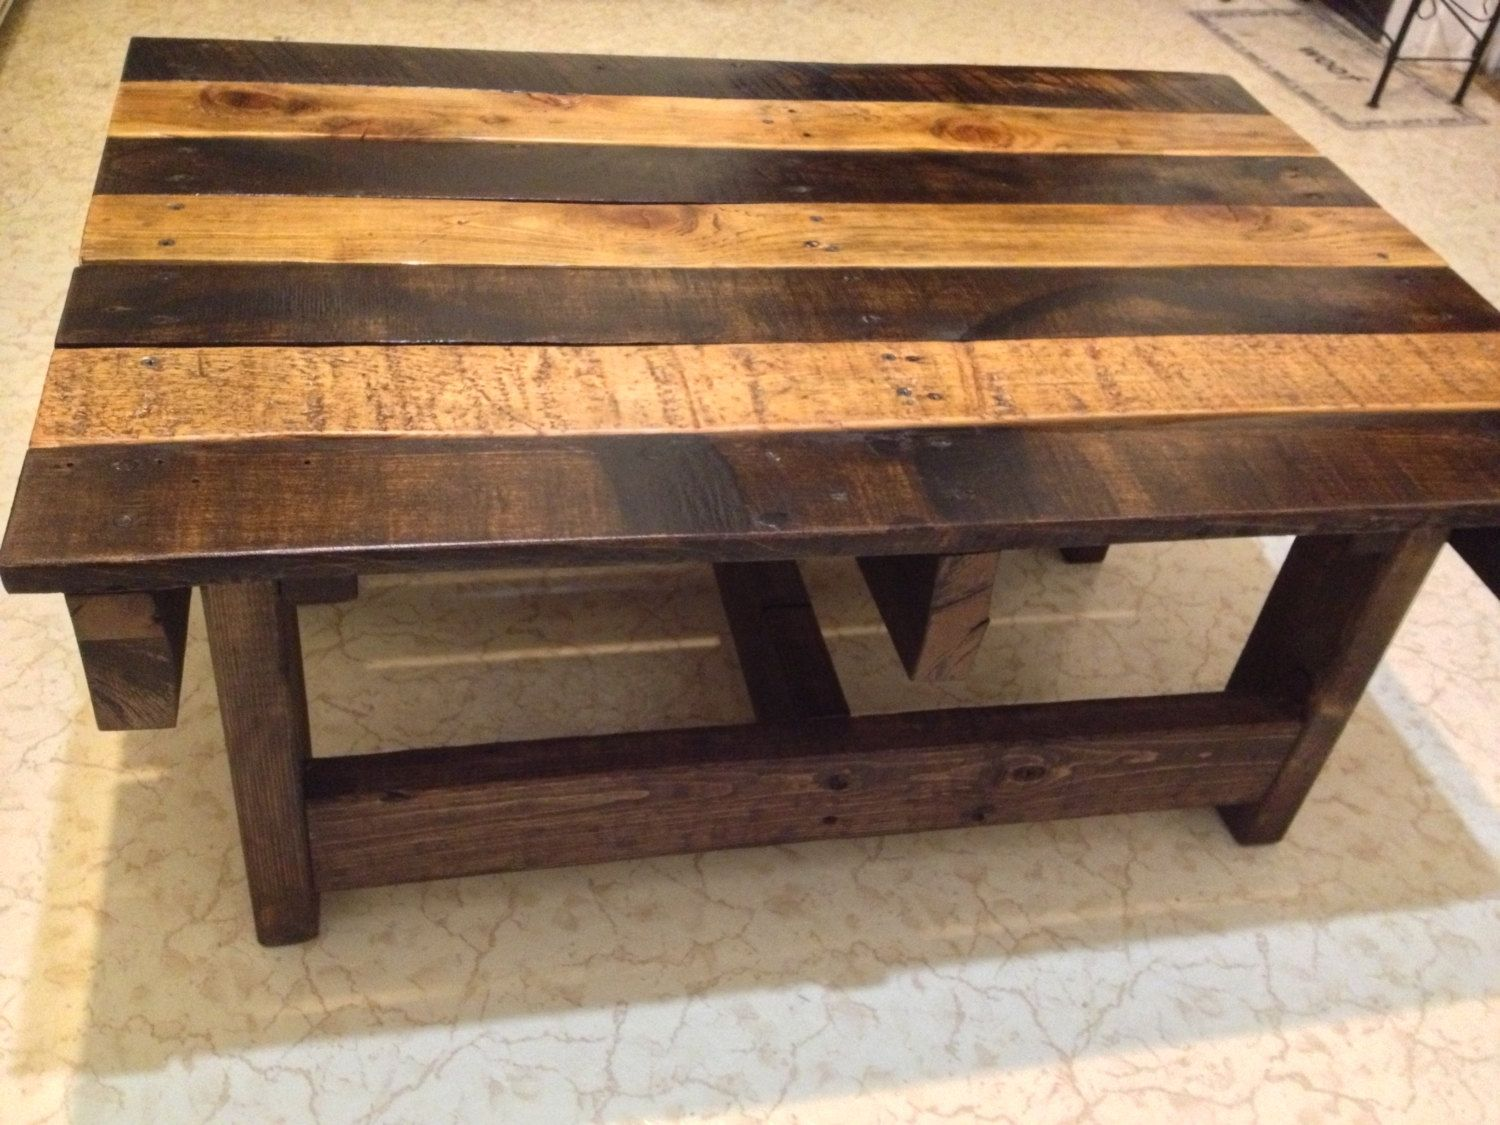 ... Pallet Wood Coffee Table by Kevin Davis WoodWork | CustomMade.com